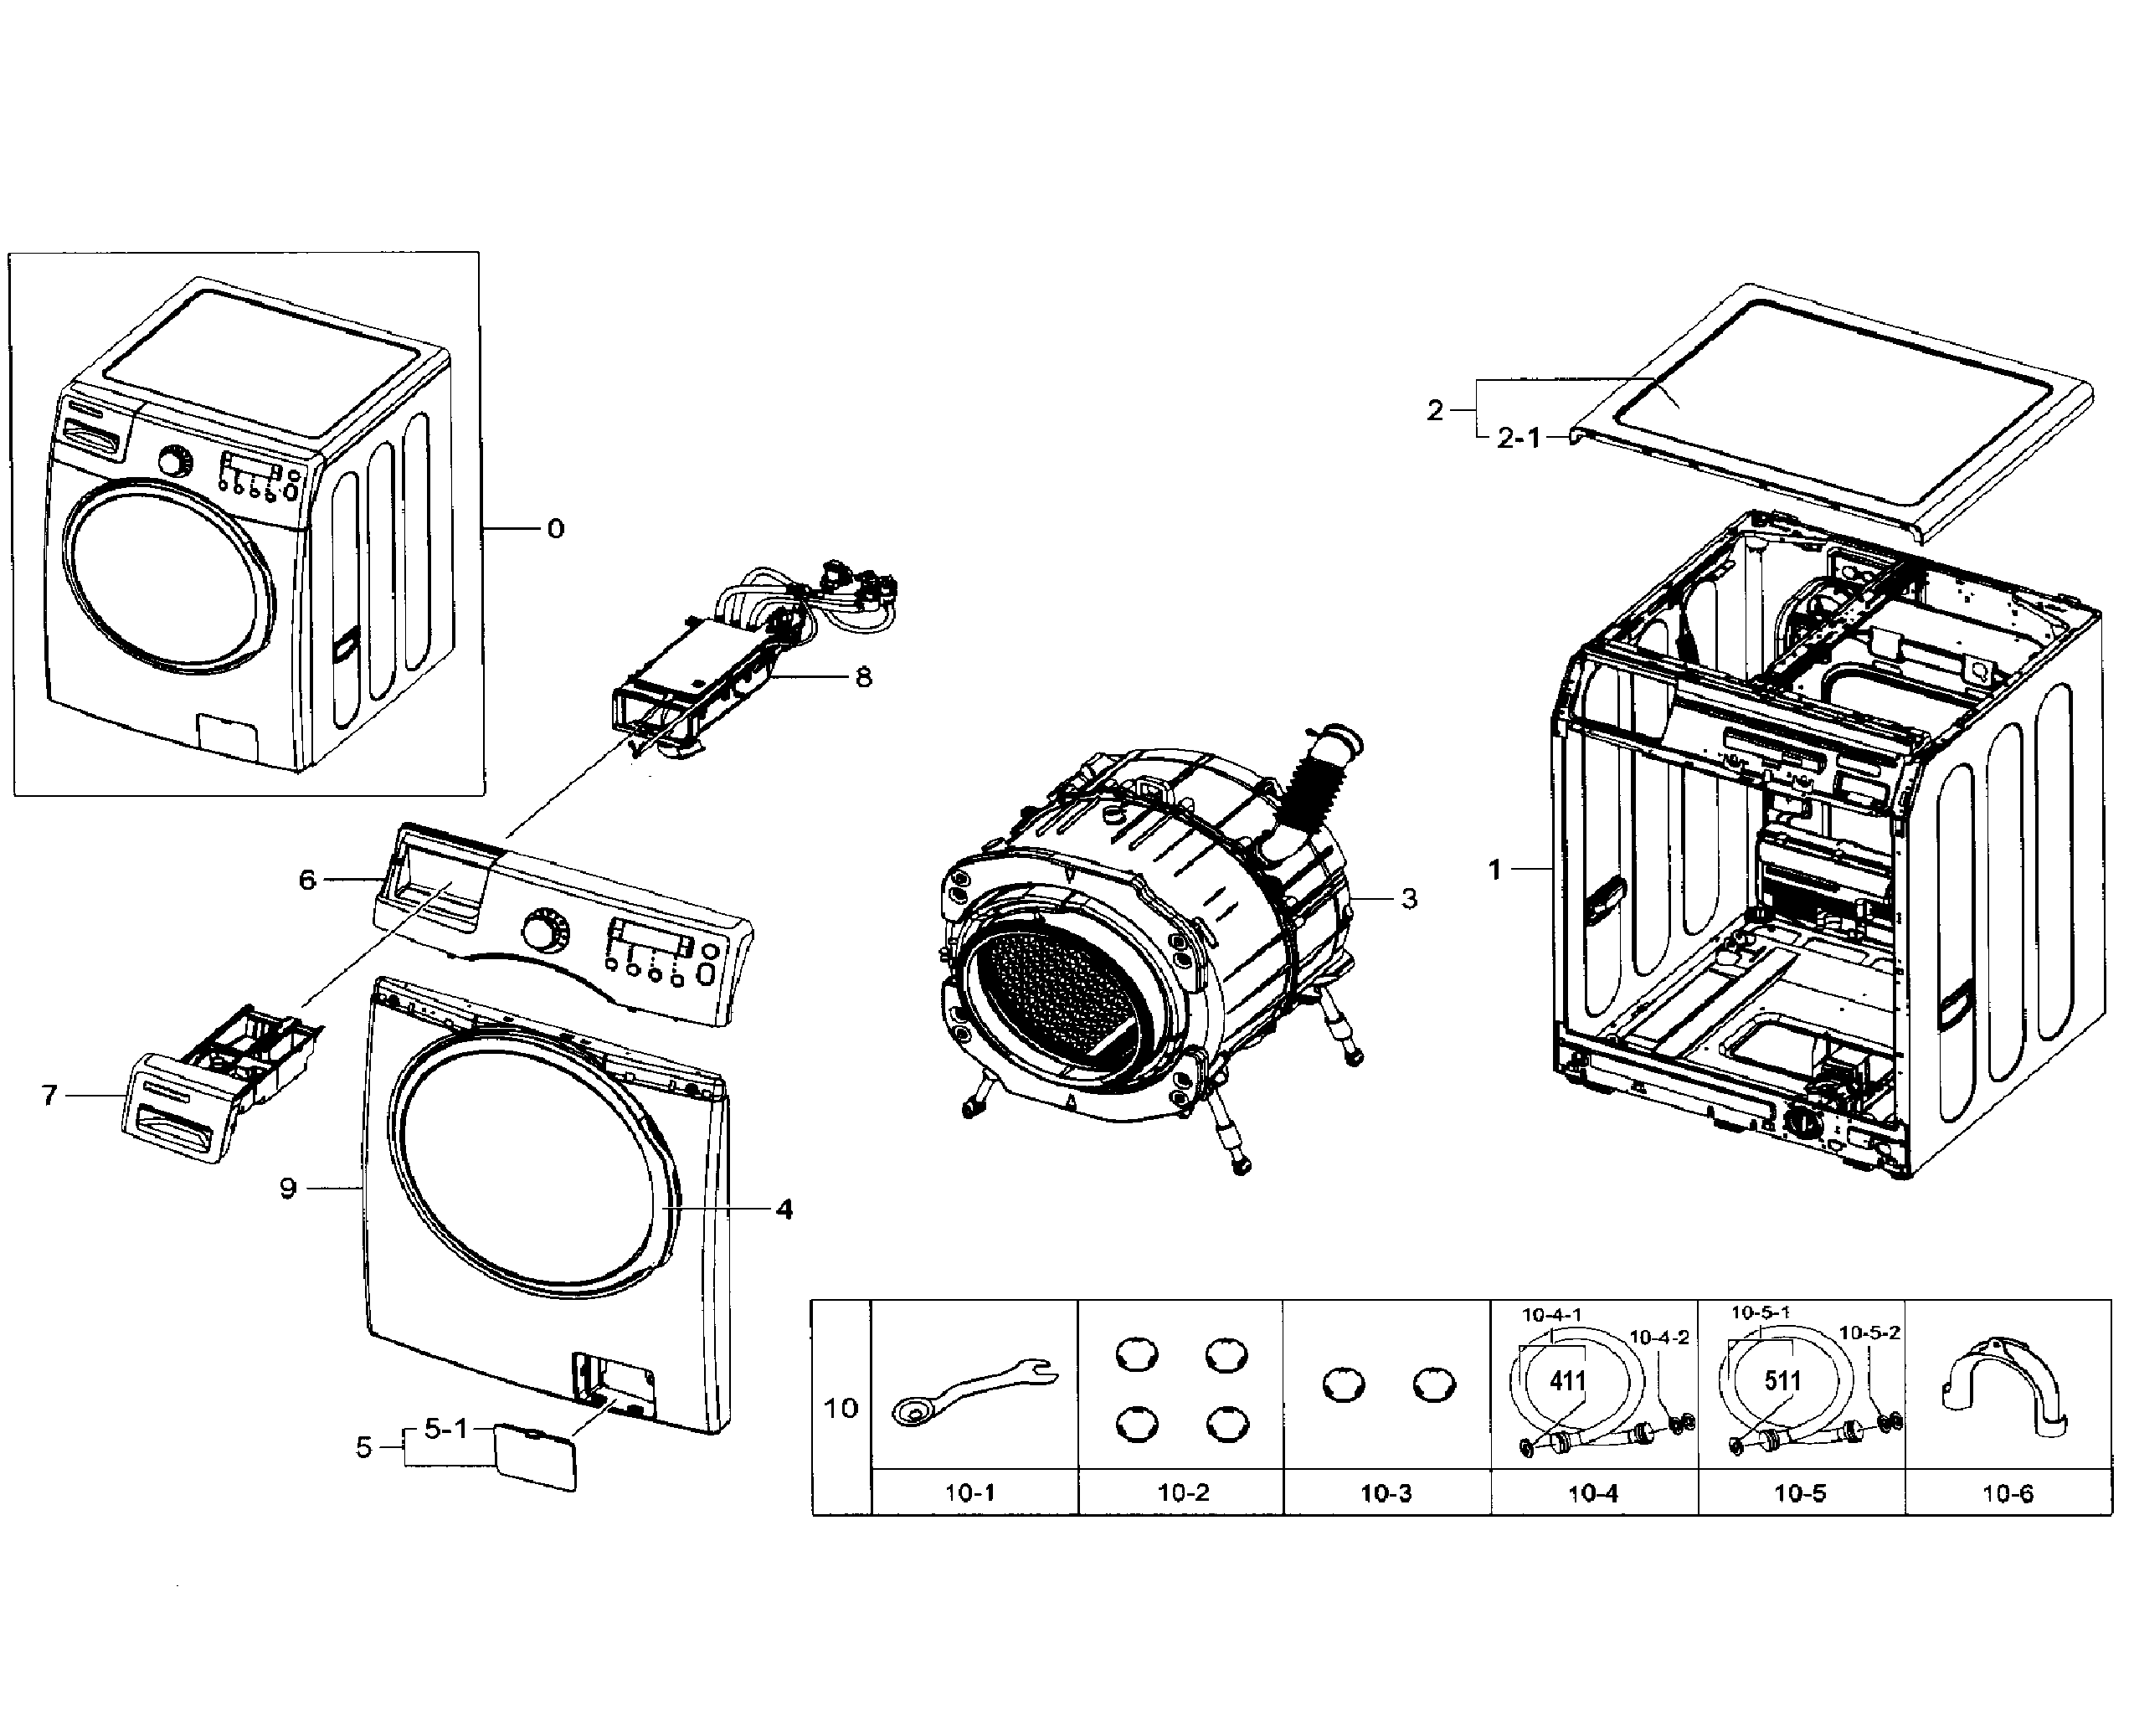 front load washer parts diagram evinrude 115 wiring samsung model wf330anbxaa0002 sears